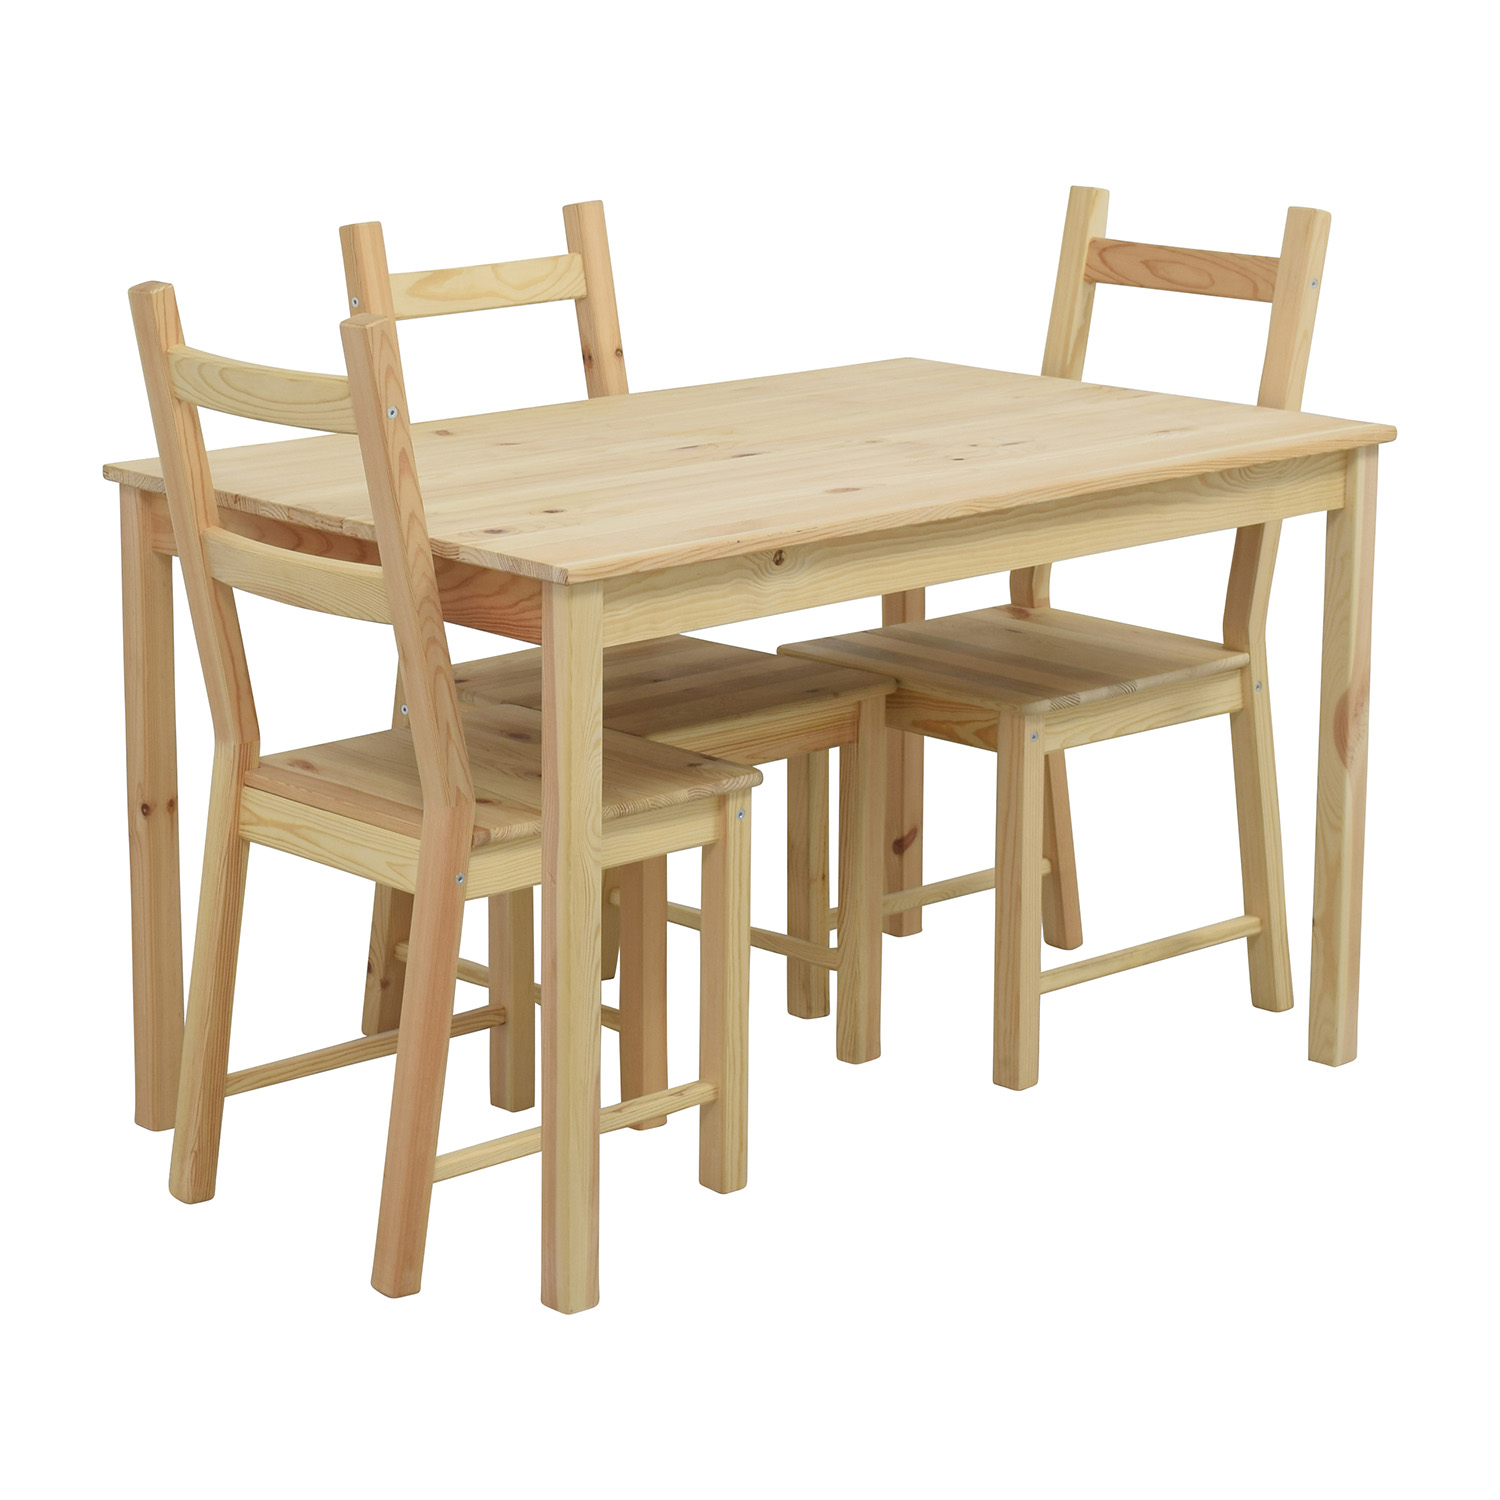 51 Off Ikea Ikea Ingo Pine Table With Ivar Pine Chairs